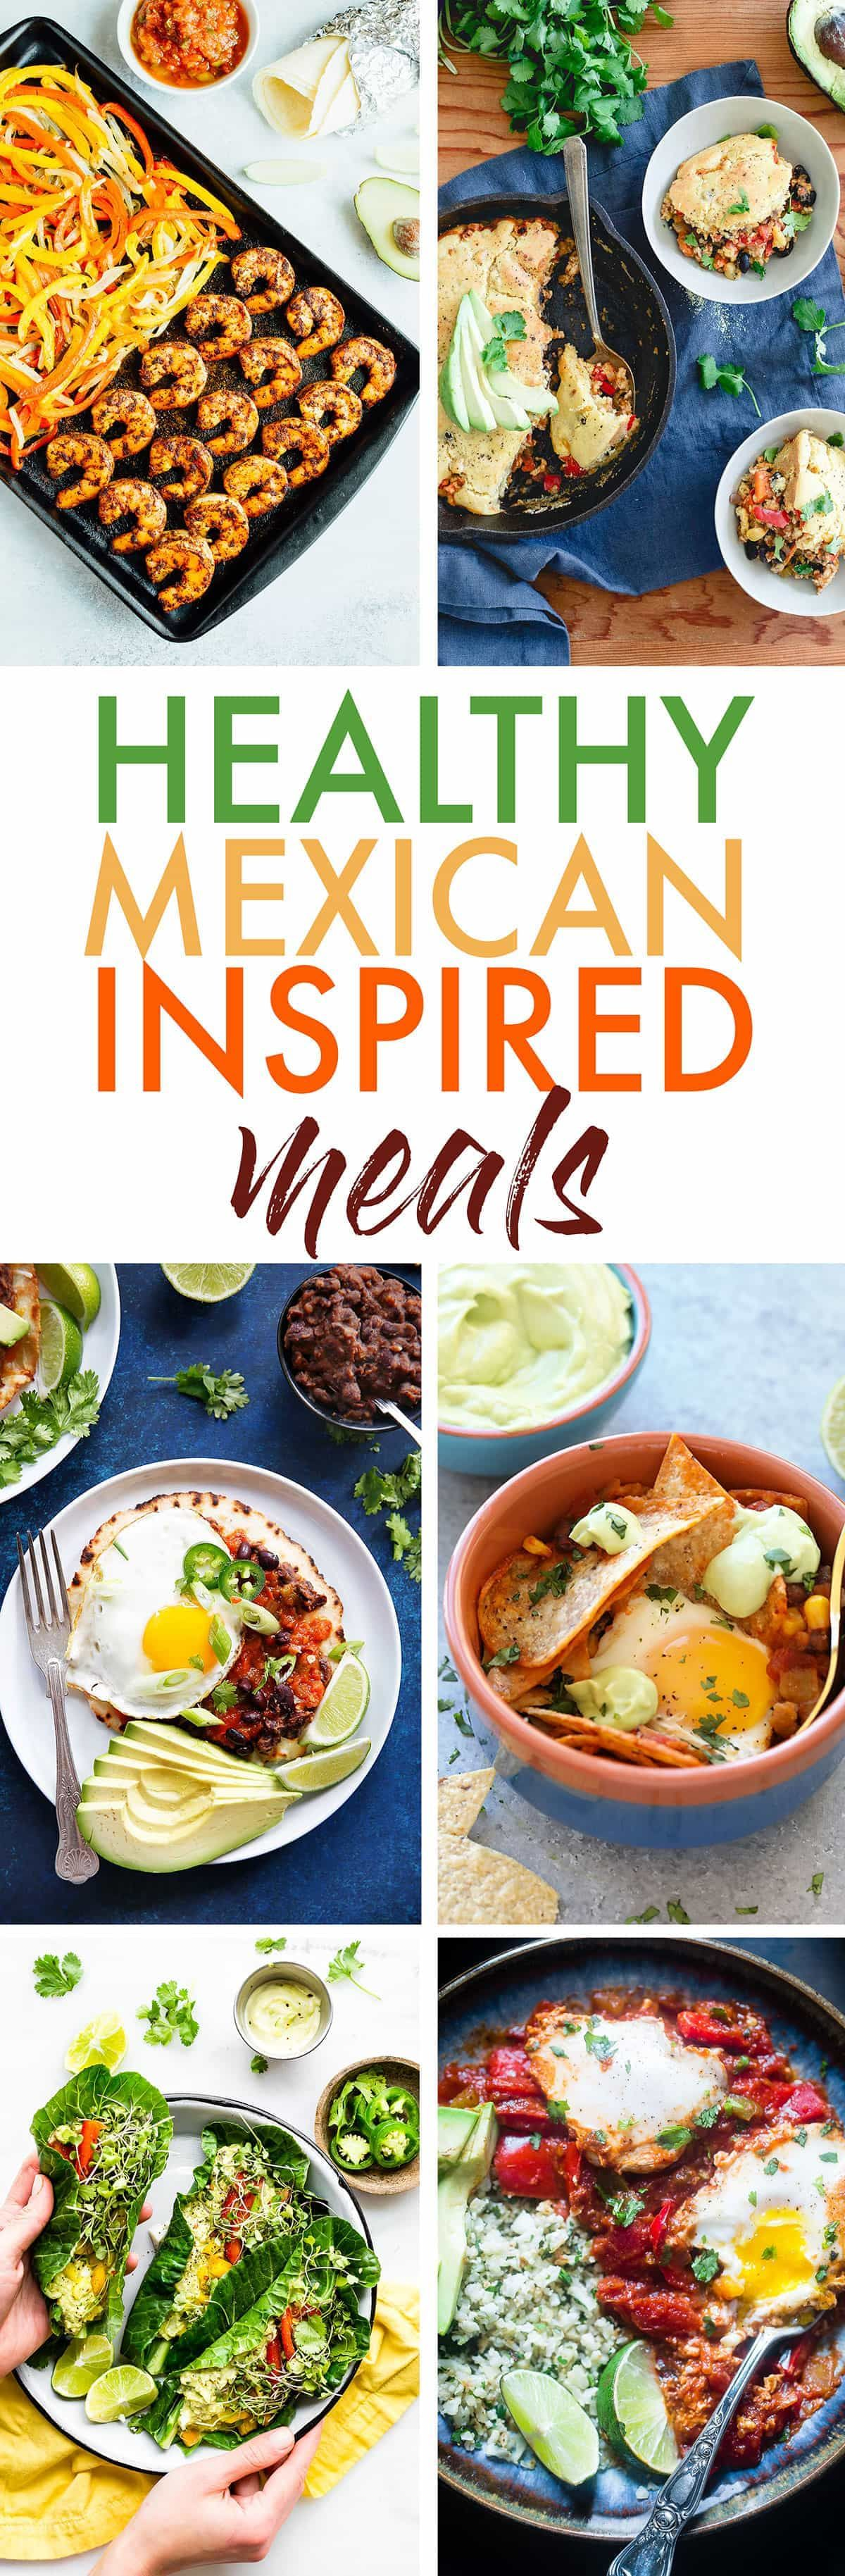 Healthy Mexican Inspired Meals Cozyhome Mealprep